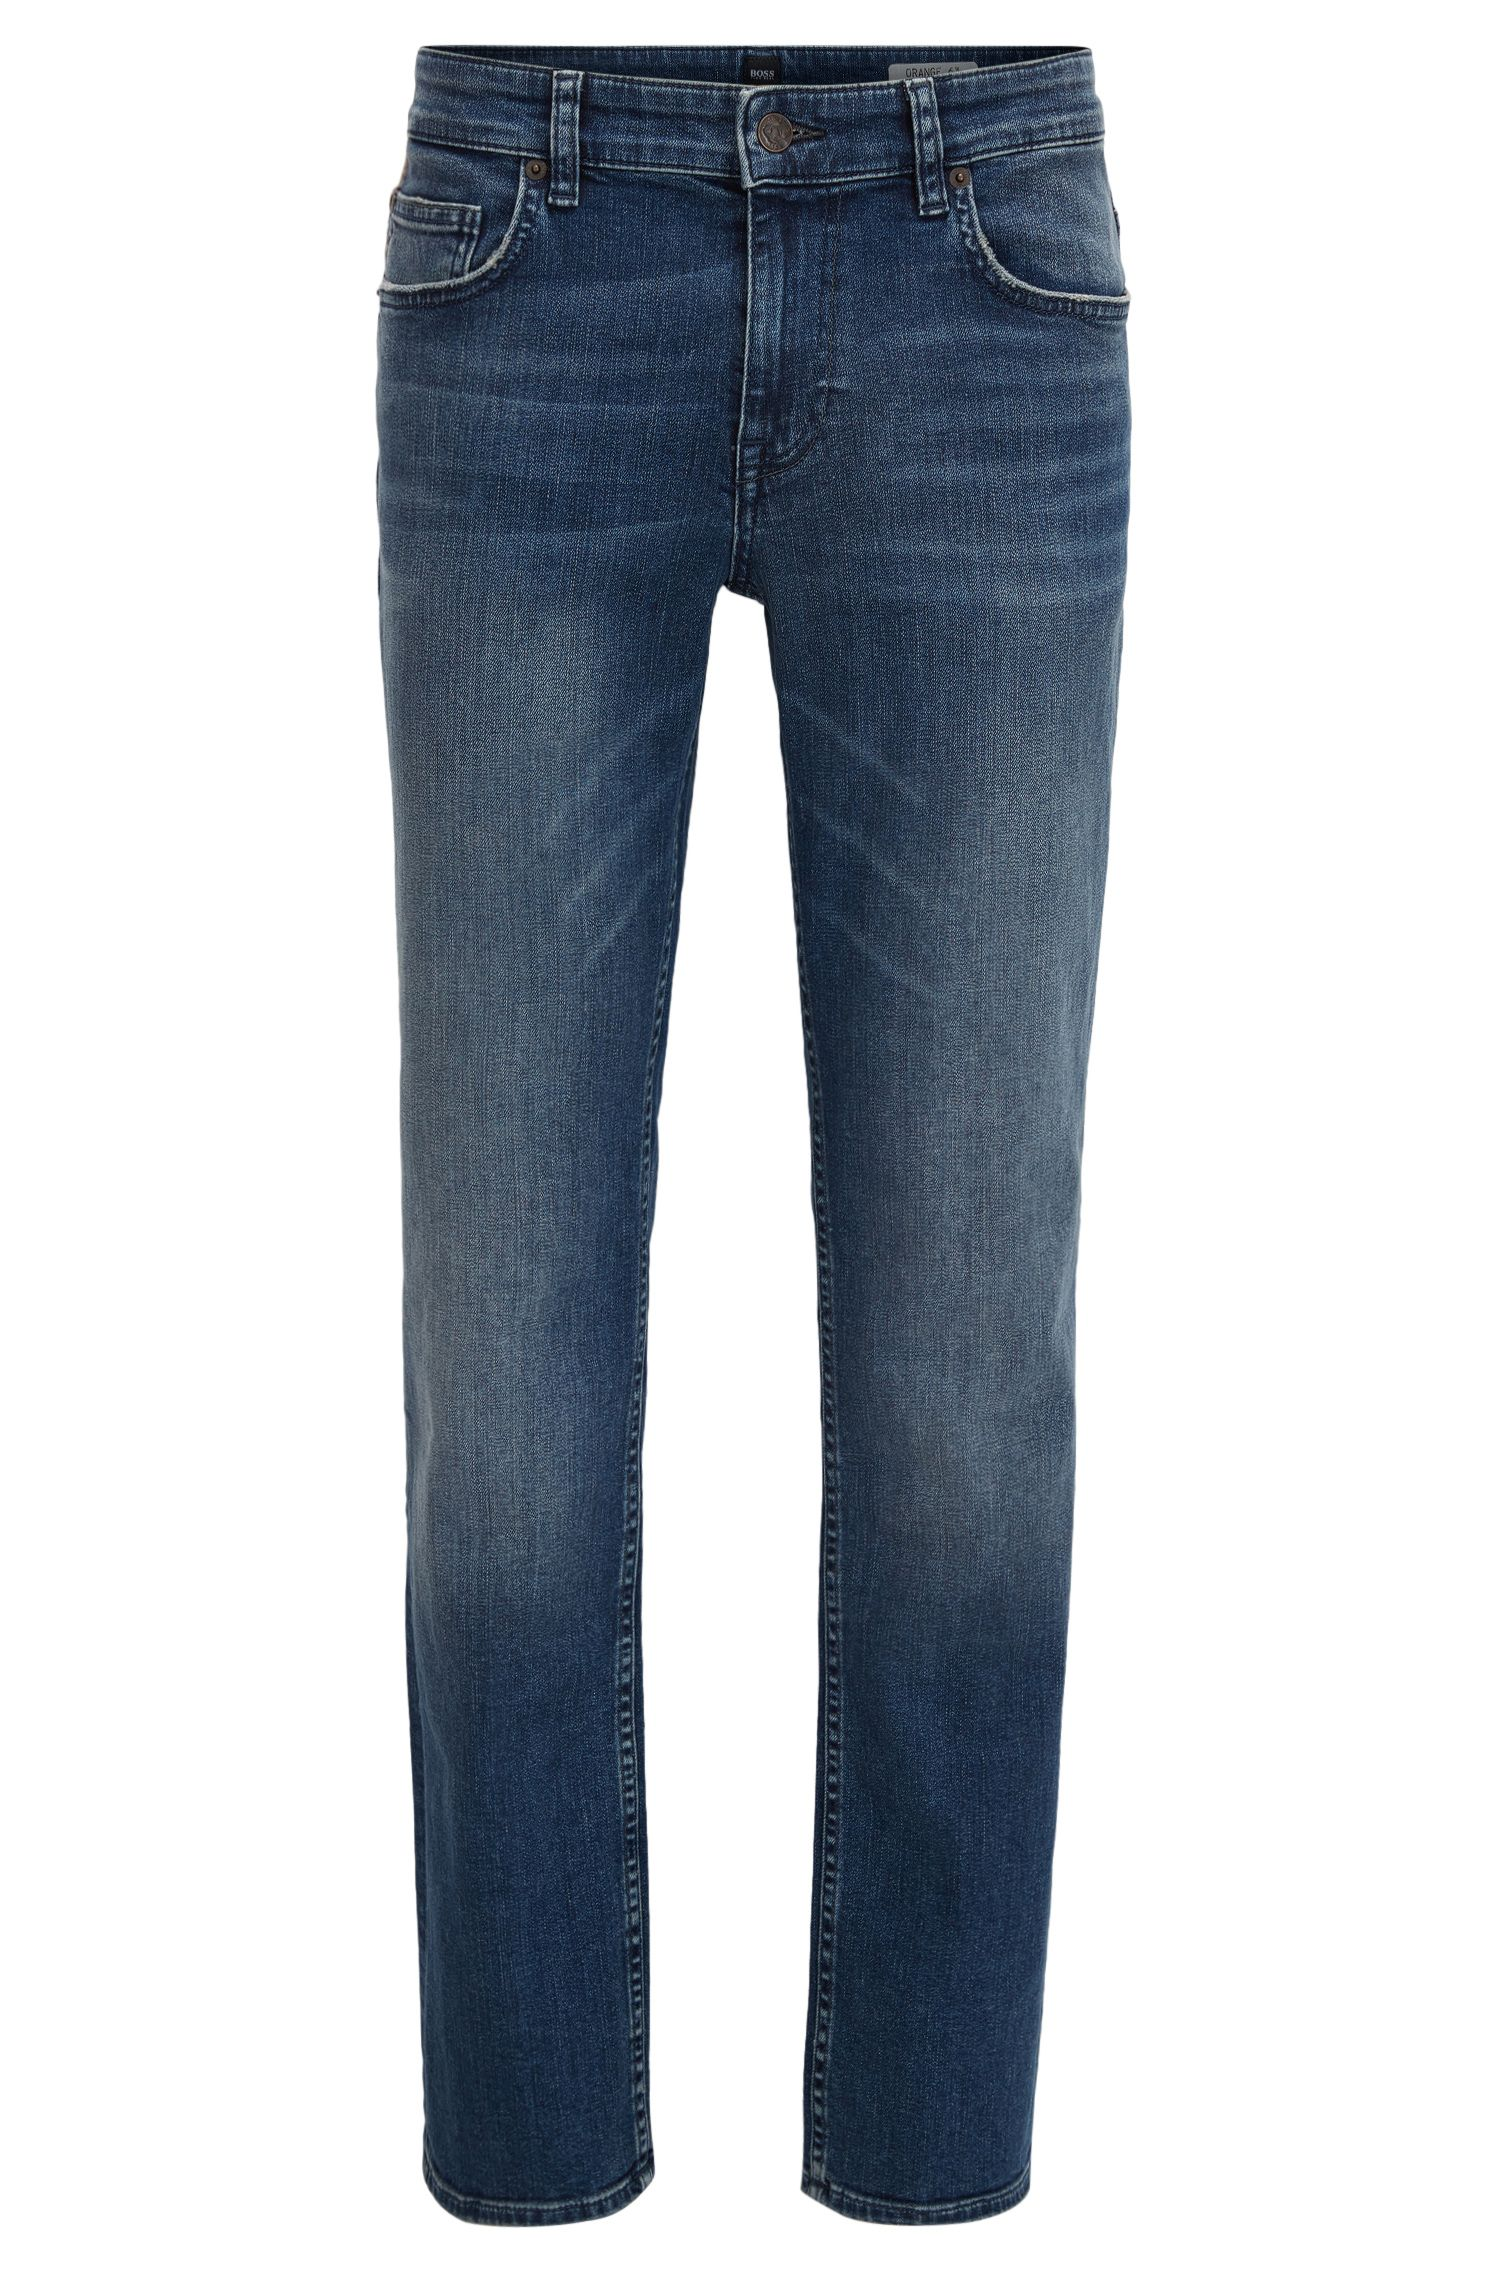 Jean Slim Fit en denim stretch confortable